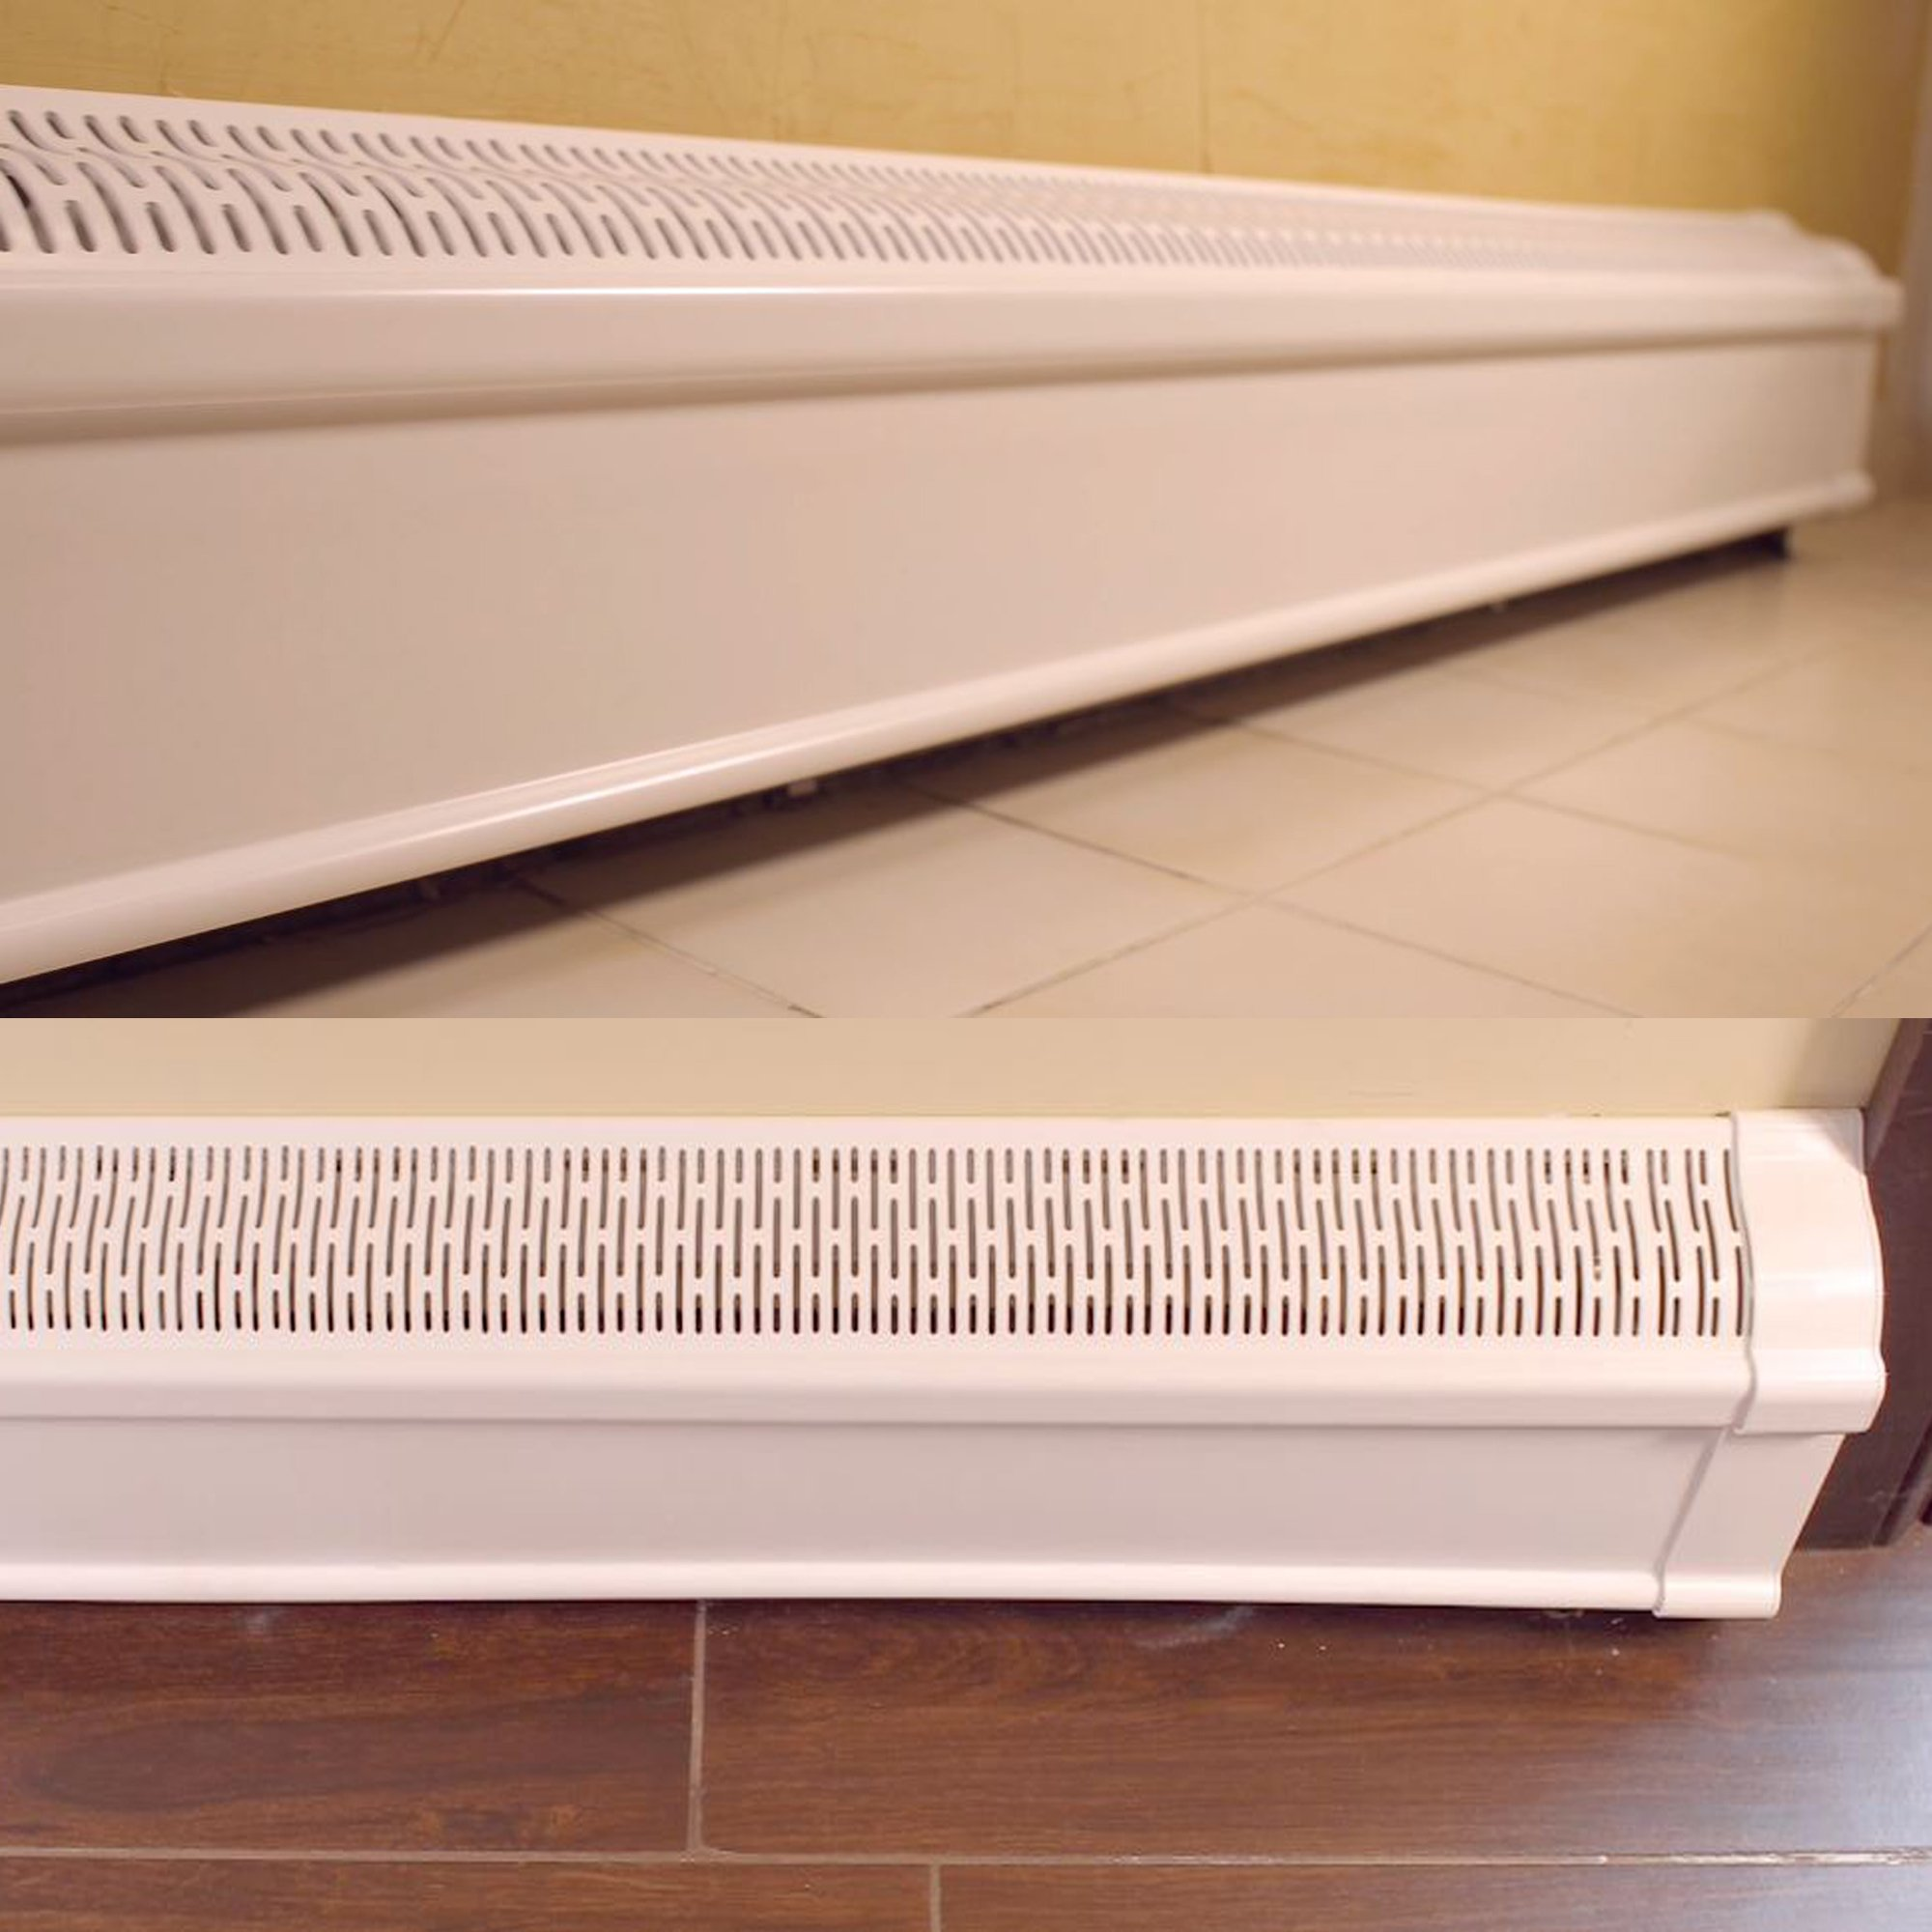 Baseboard Heater Covers, COMPLETE SET with Right and Left End Caps | Hot Water, Hydronic Heater Slant Fin Baseboard Cover Enclosure Replacement Kit - 6' White / Rustproof Plastic Composite by Cover-Luxe